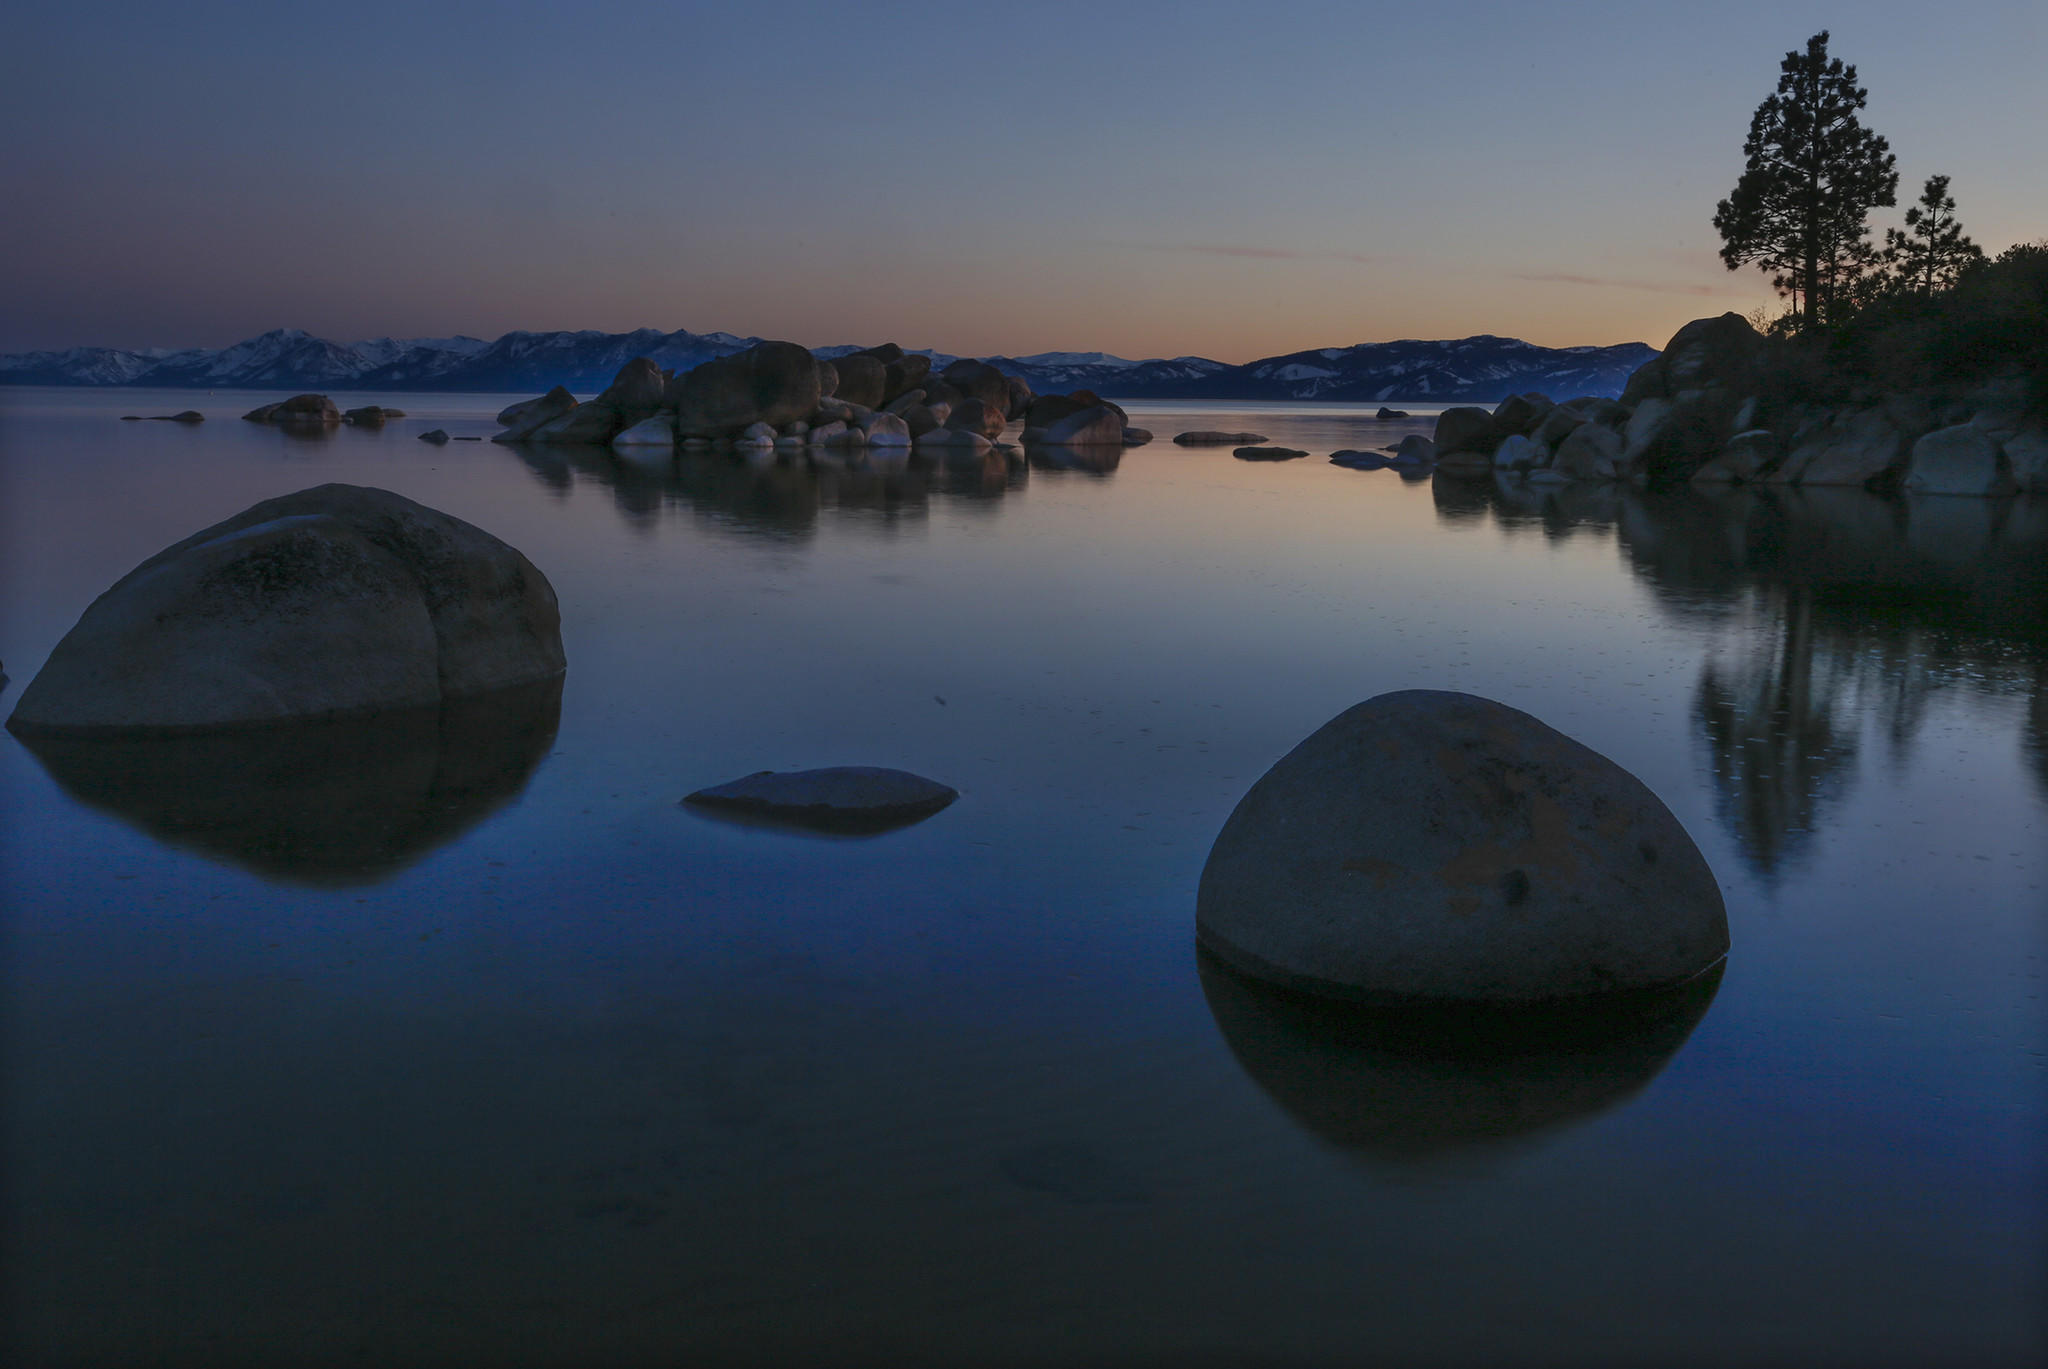 The large boulders on Speedboat Beach in North Lake Tahoe remain where Mark Twain is known to have played cards and camped.